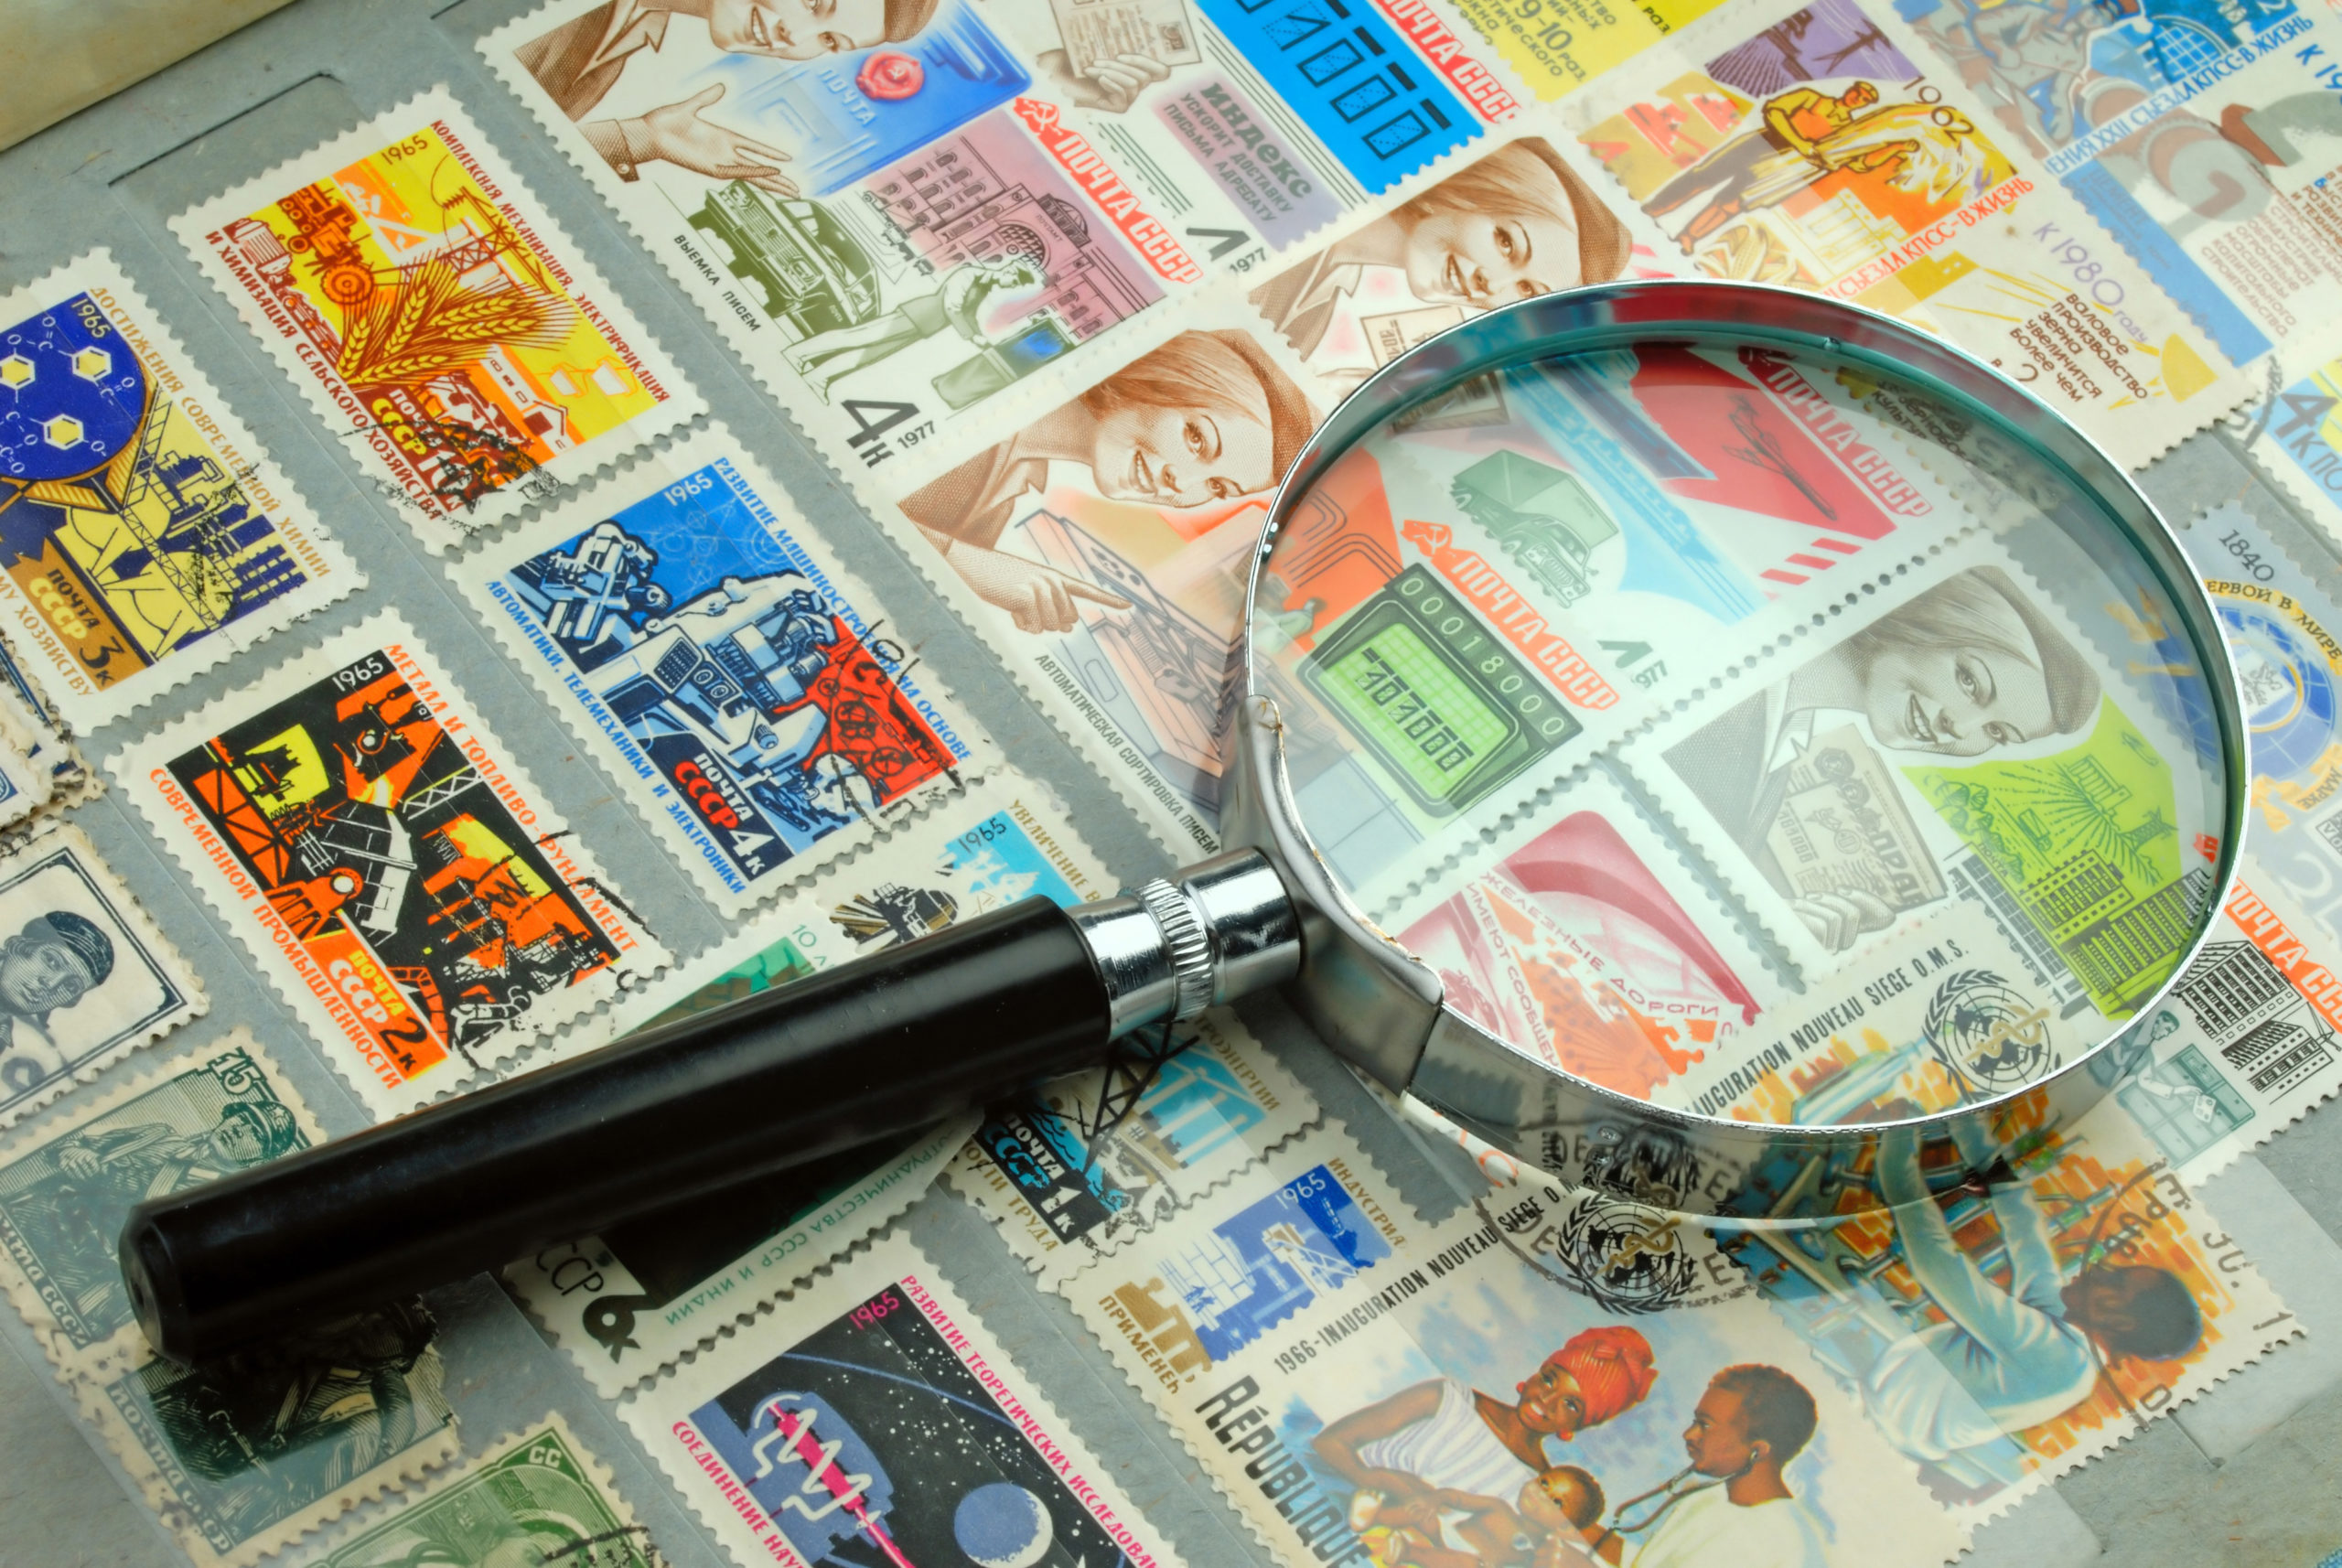 A magnifying glass laying on a stamp collection from the National Postal Museum